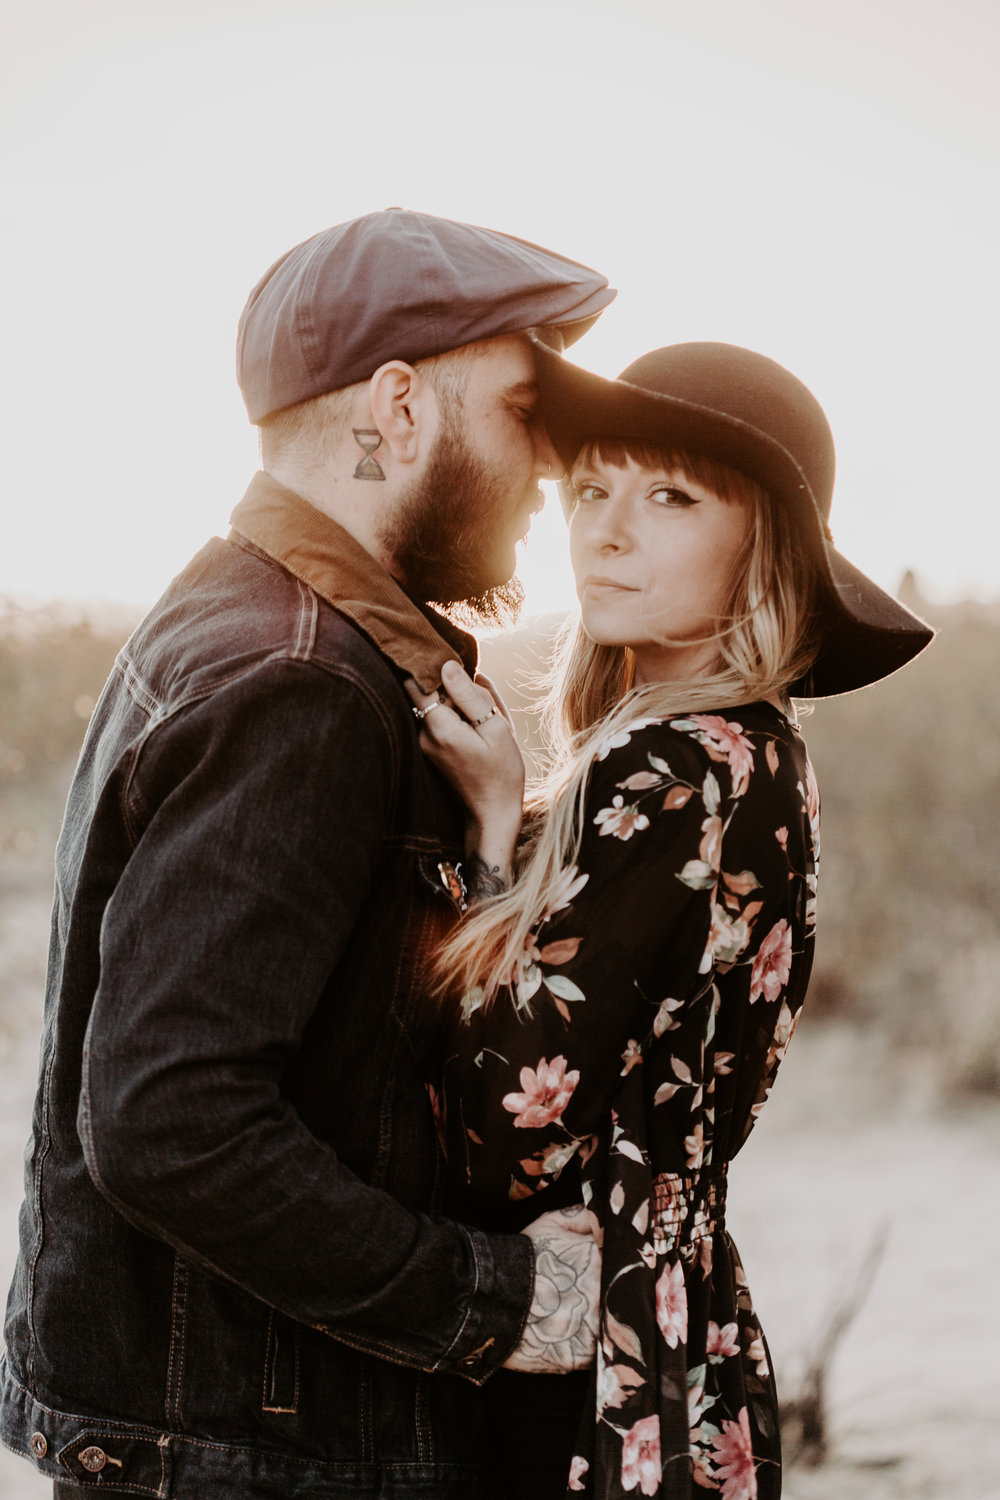 nicole-daacke-photography-joshua-tree-cactus-garden-engagement-photos-joshua-tree-national-park-enegagement-session-edgy-hipster-california-cholla-garden-golden-sunset-session-72.jpg